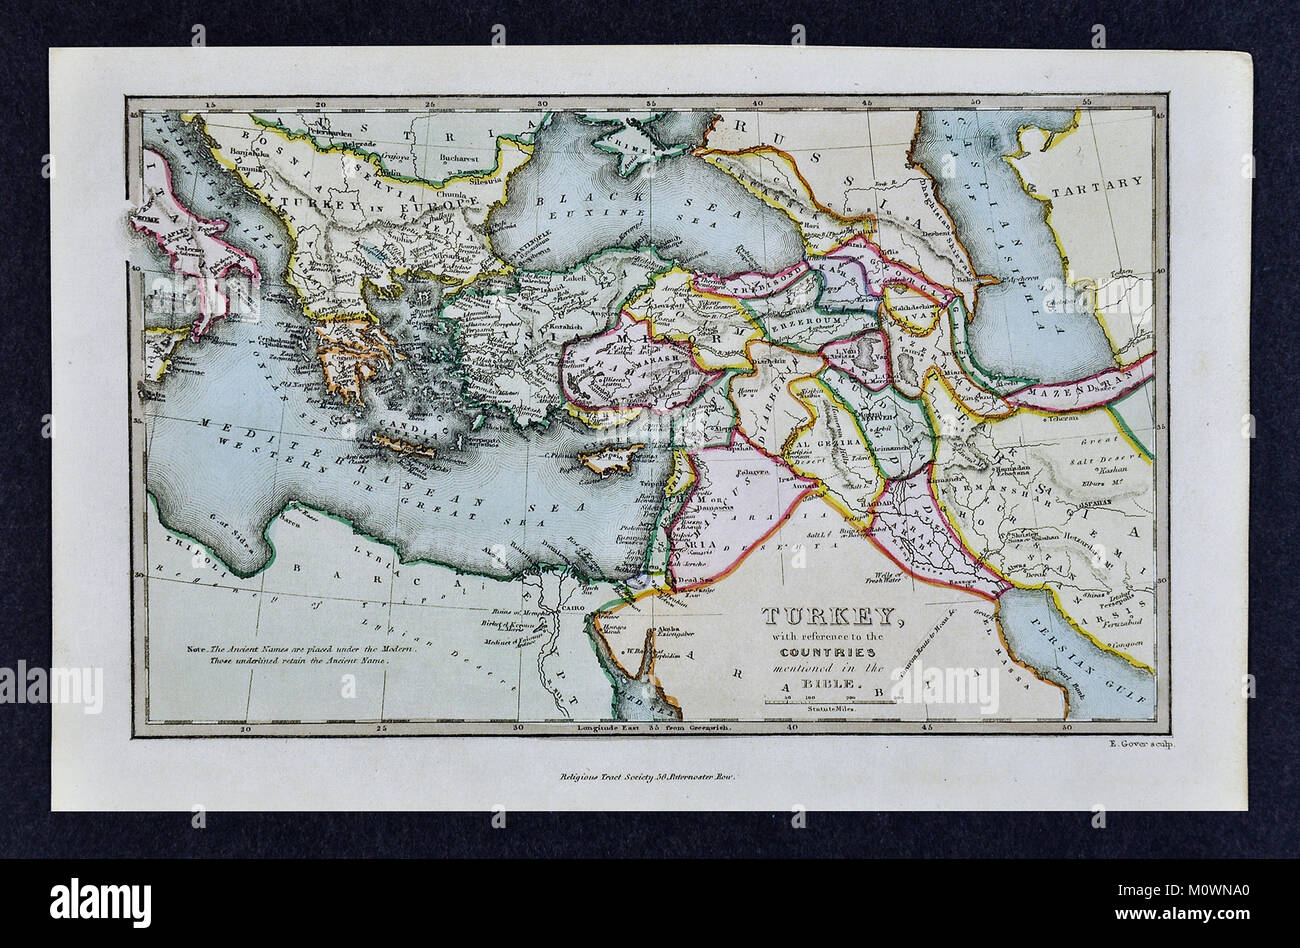 1799 bible tract society map turkey with reference to the 1799 bible tract society map turkey with reference to the countries mentioned in the bible asia minor middle east gumiabroncs Image collections